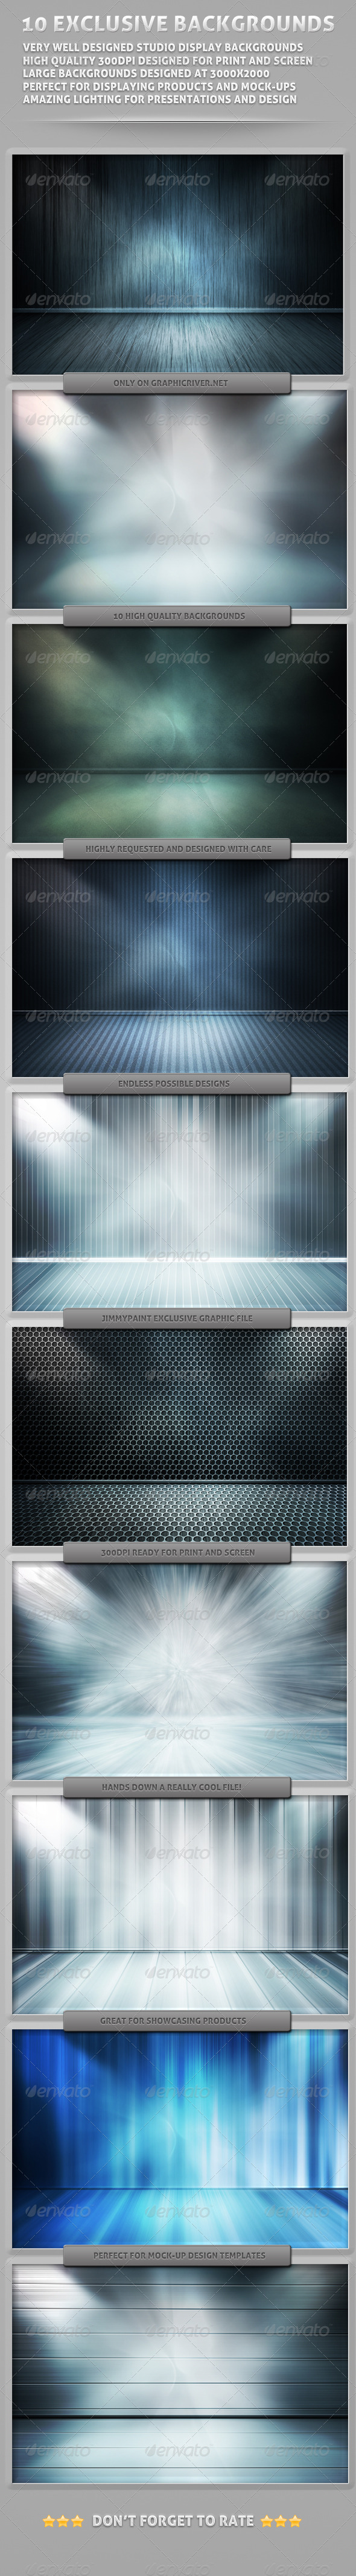 GraphicRiver Empty Room Mock Up Backgrounds 5965120